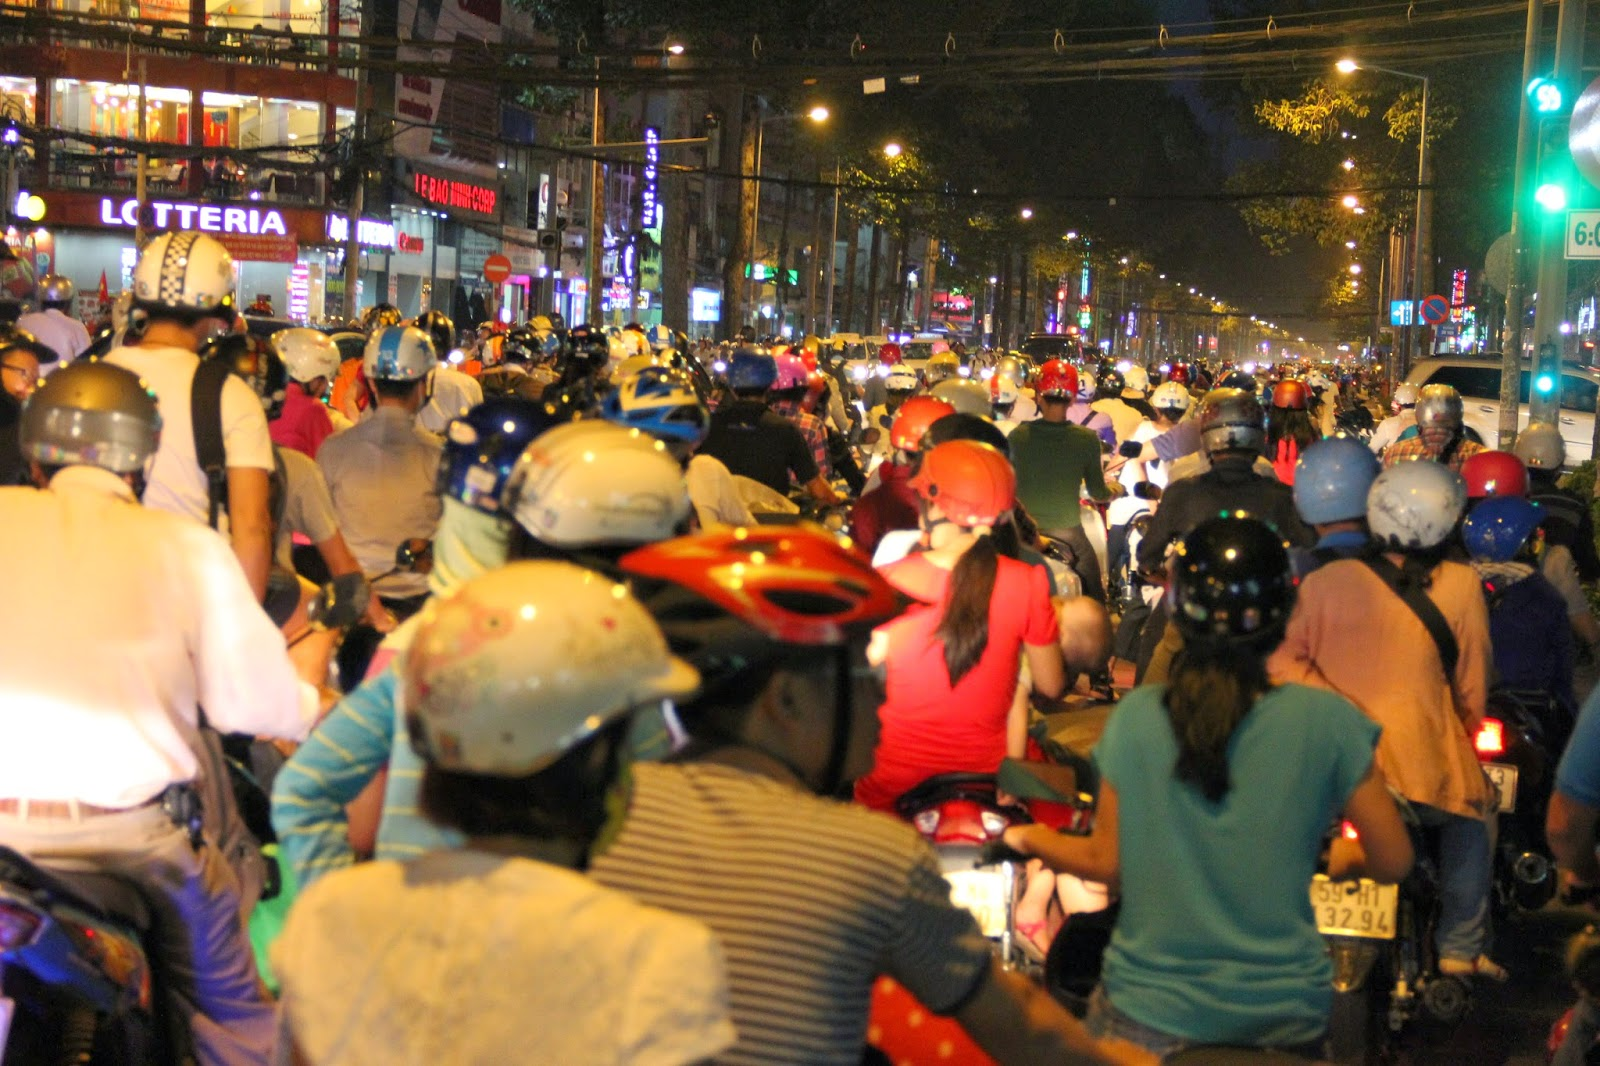 Joining the fray: what it looked like as a passenger riding a cyclo in the motorbike traffic in Ho Chi Minh City!